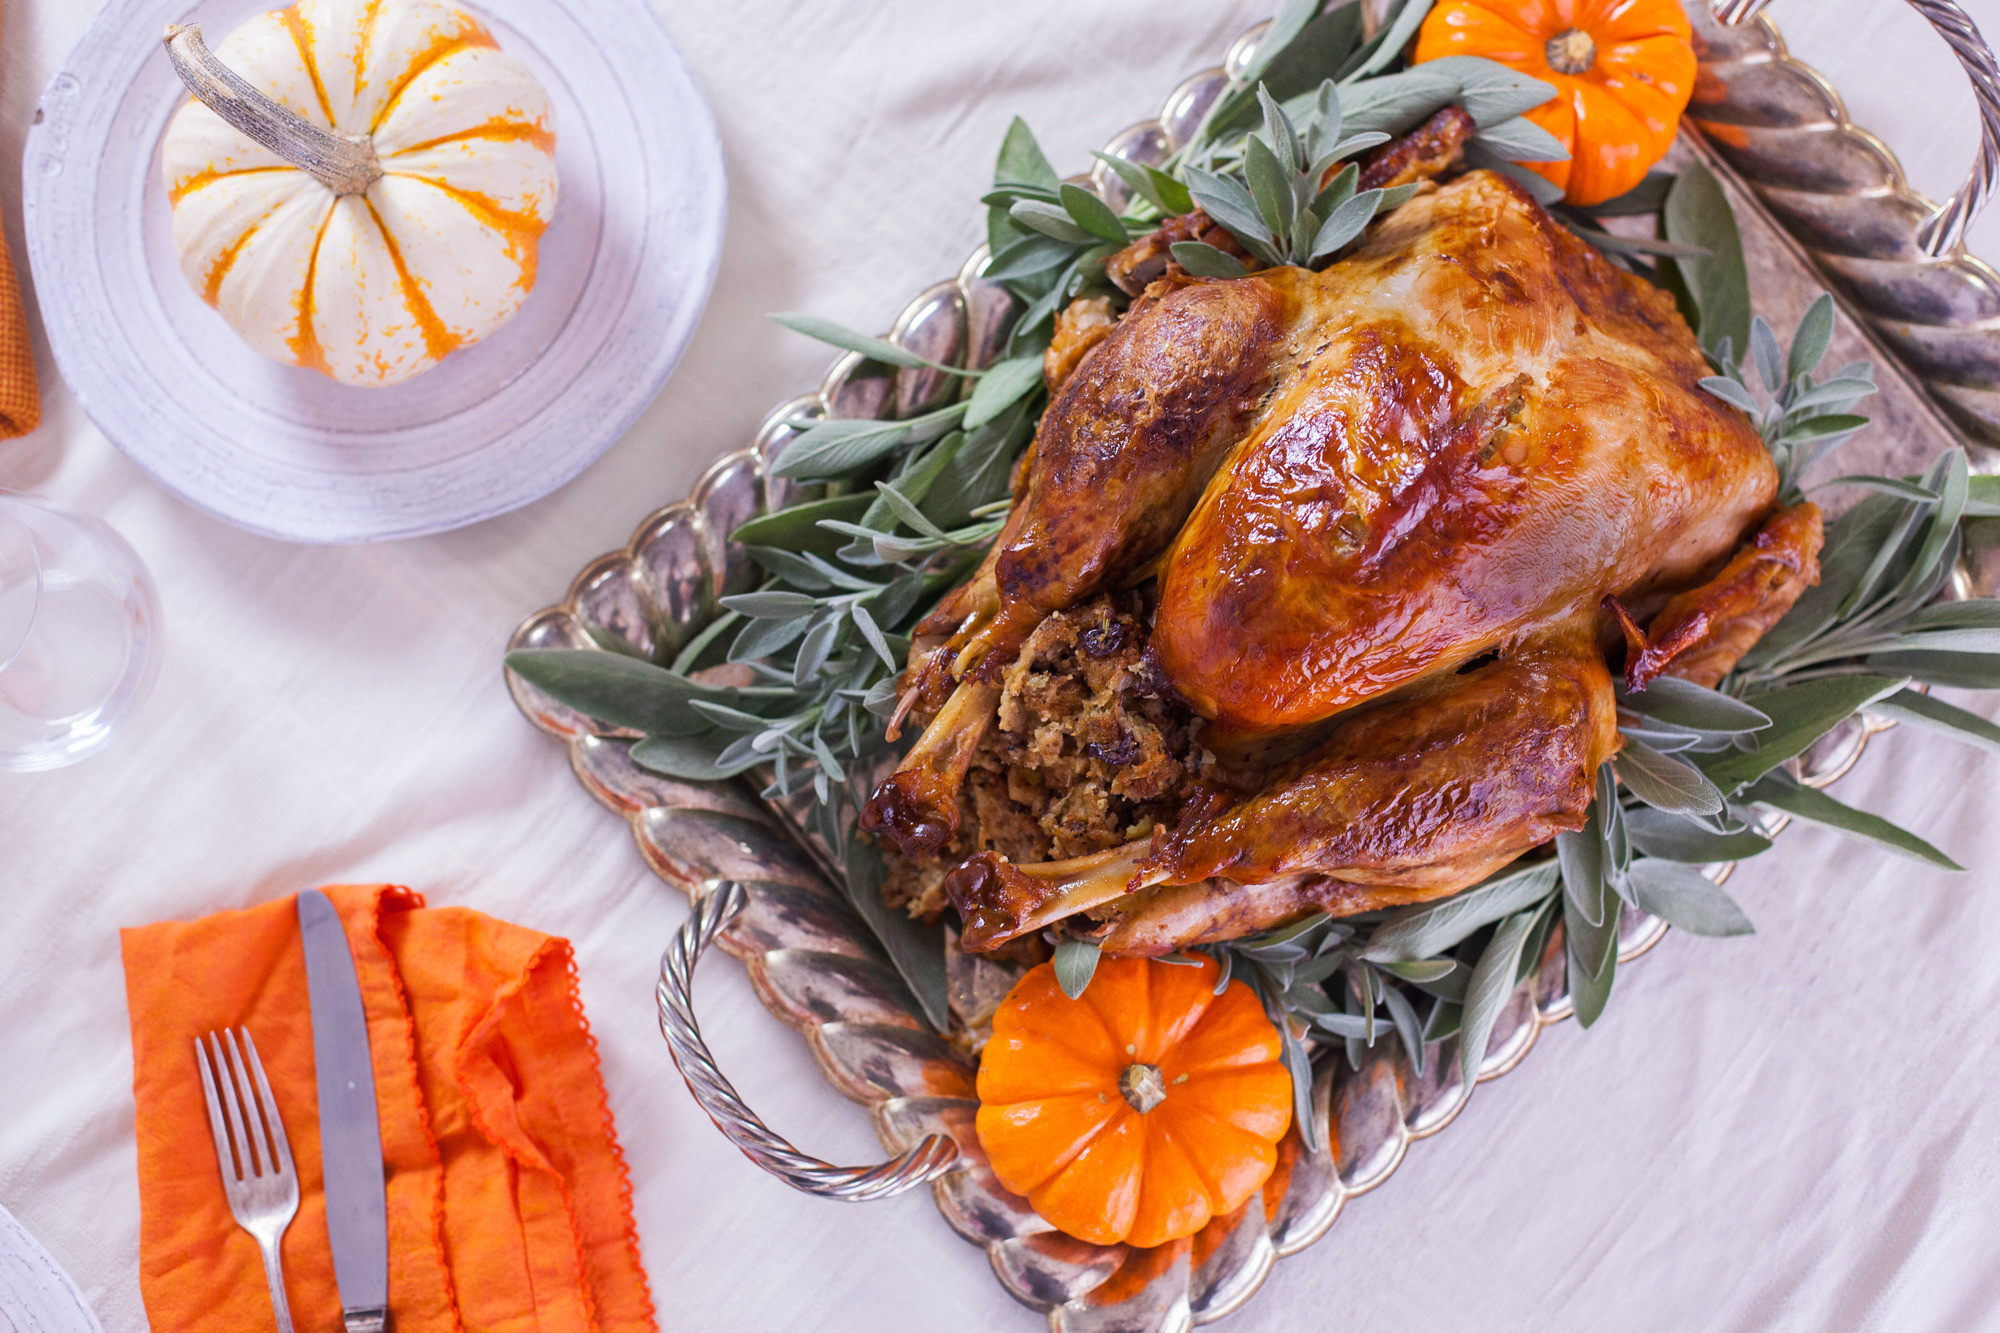 Turkey Cooking Recipes For Thanksgiving  Different Ways To Cook Turkey Recipes For Cooking A